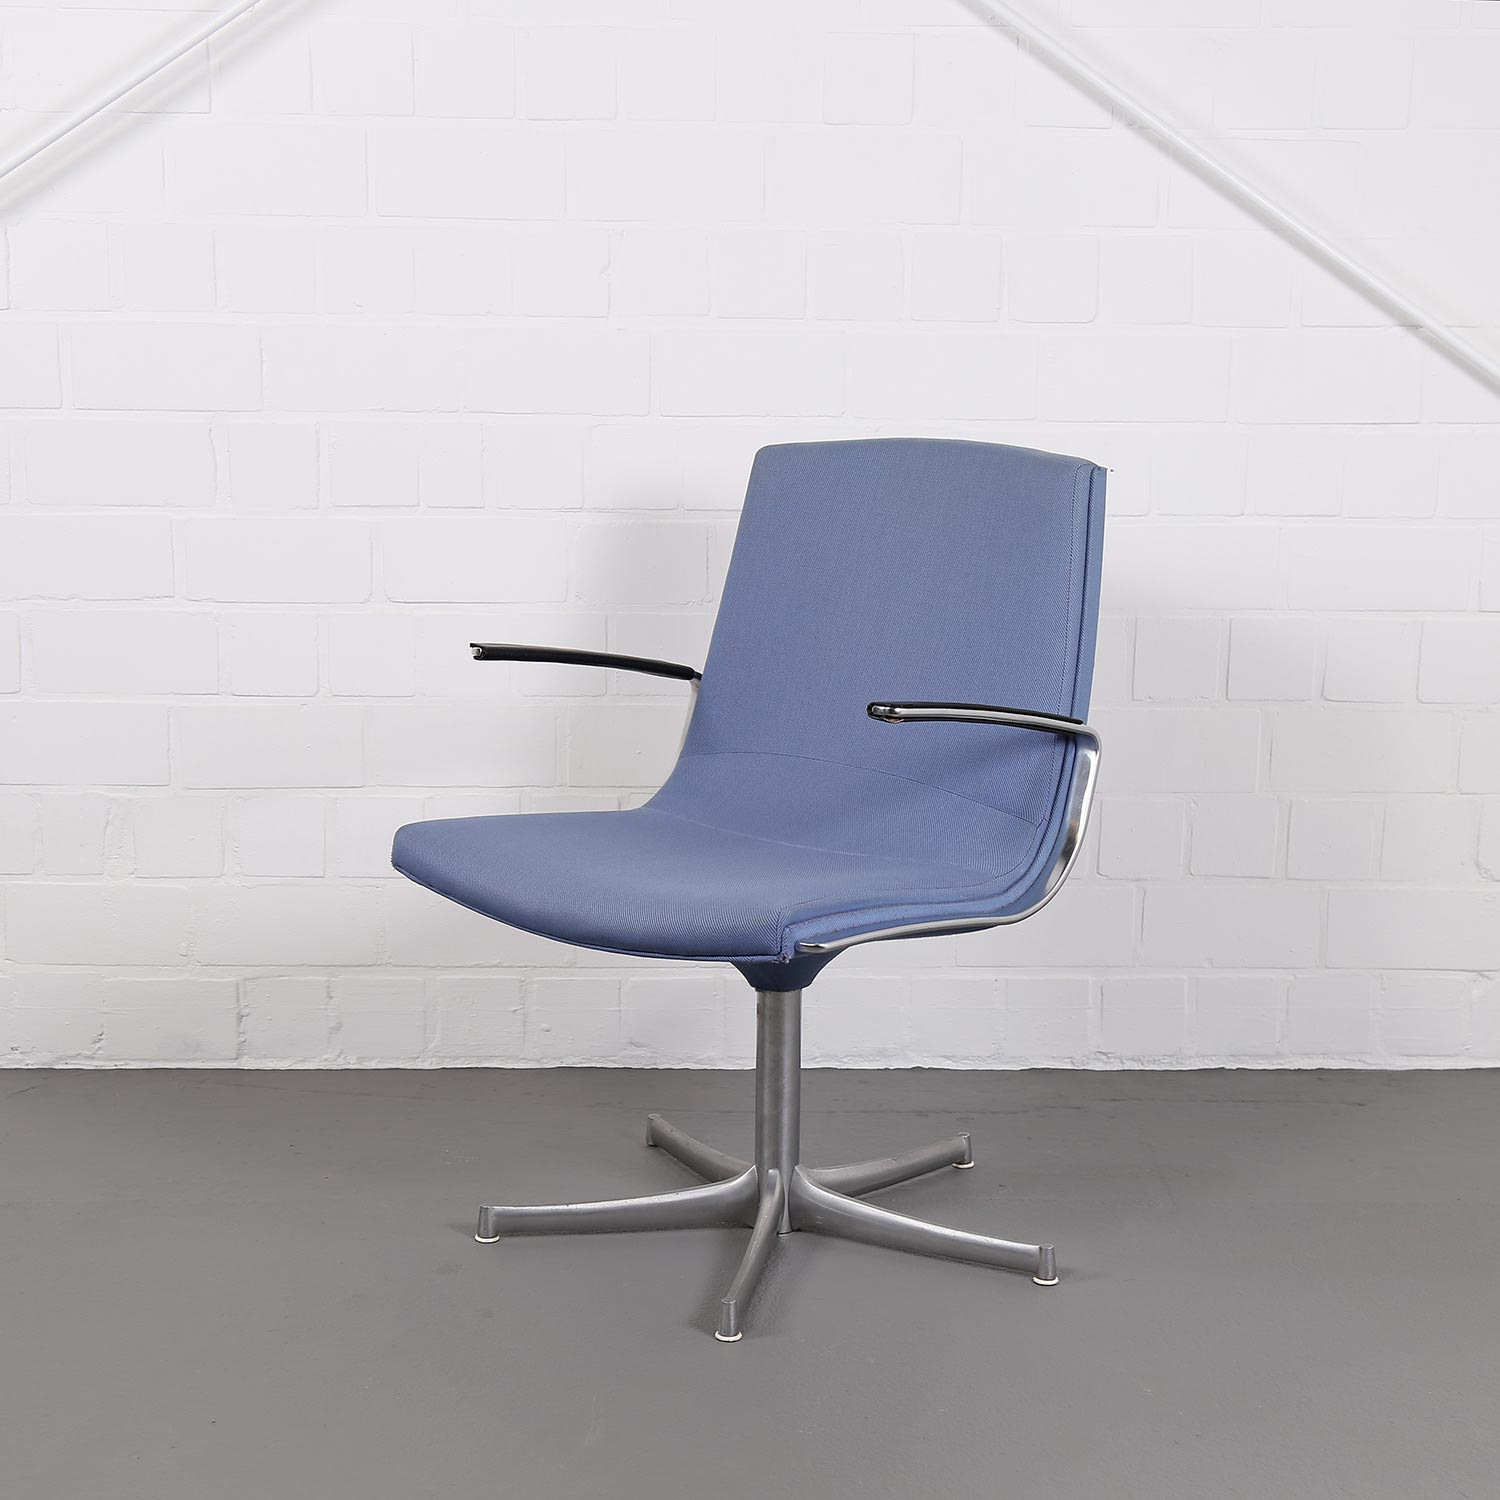 Conference Chair By Jørgen Kastholm And Preben Fabricius For Walter Knoll Dekaden